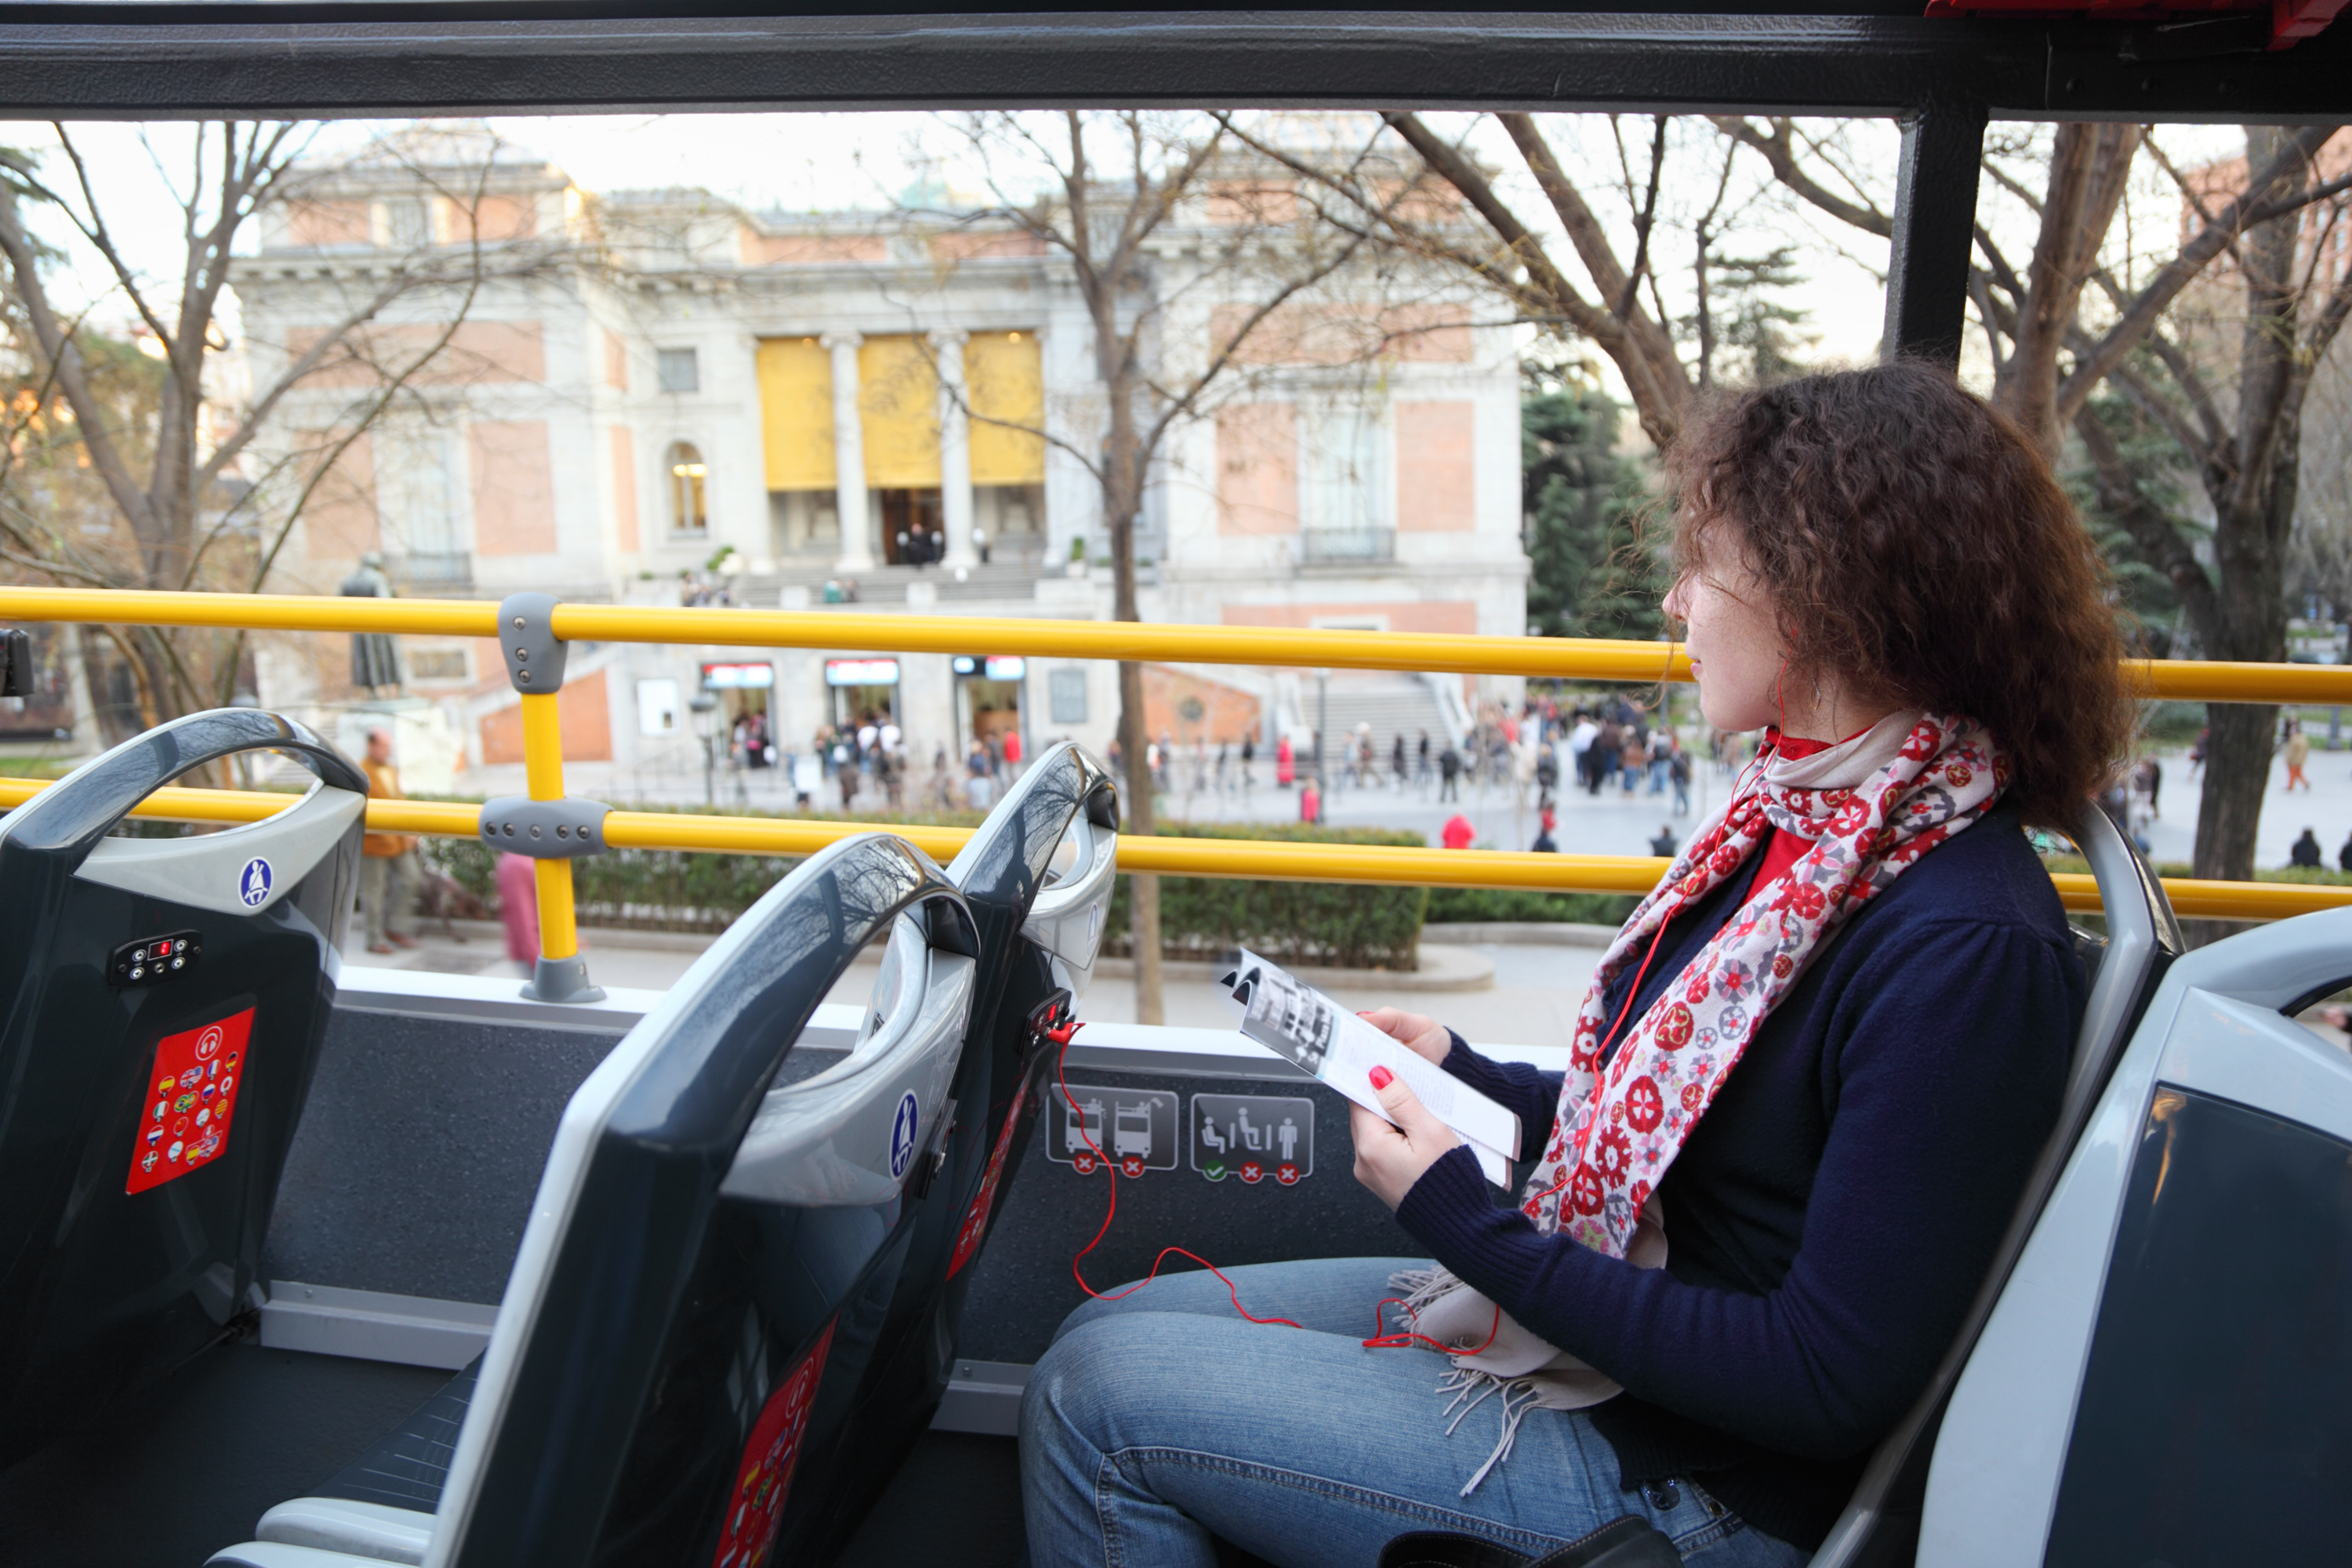 'Manspreading' is now a no-no on Madrid's public buses